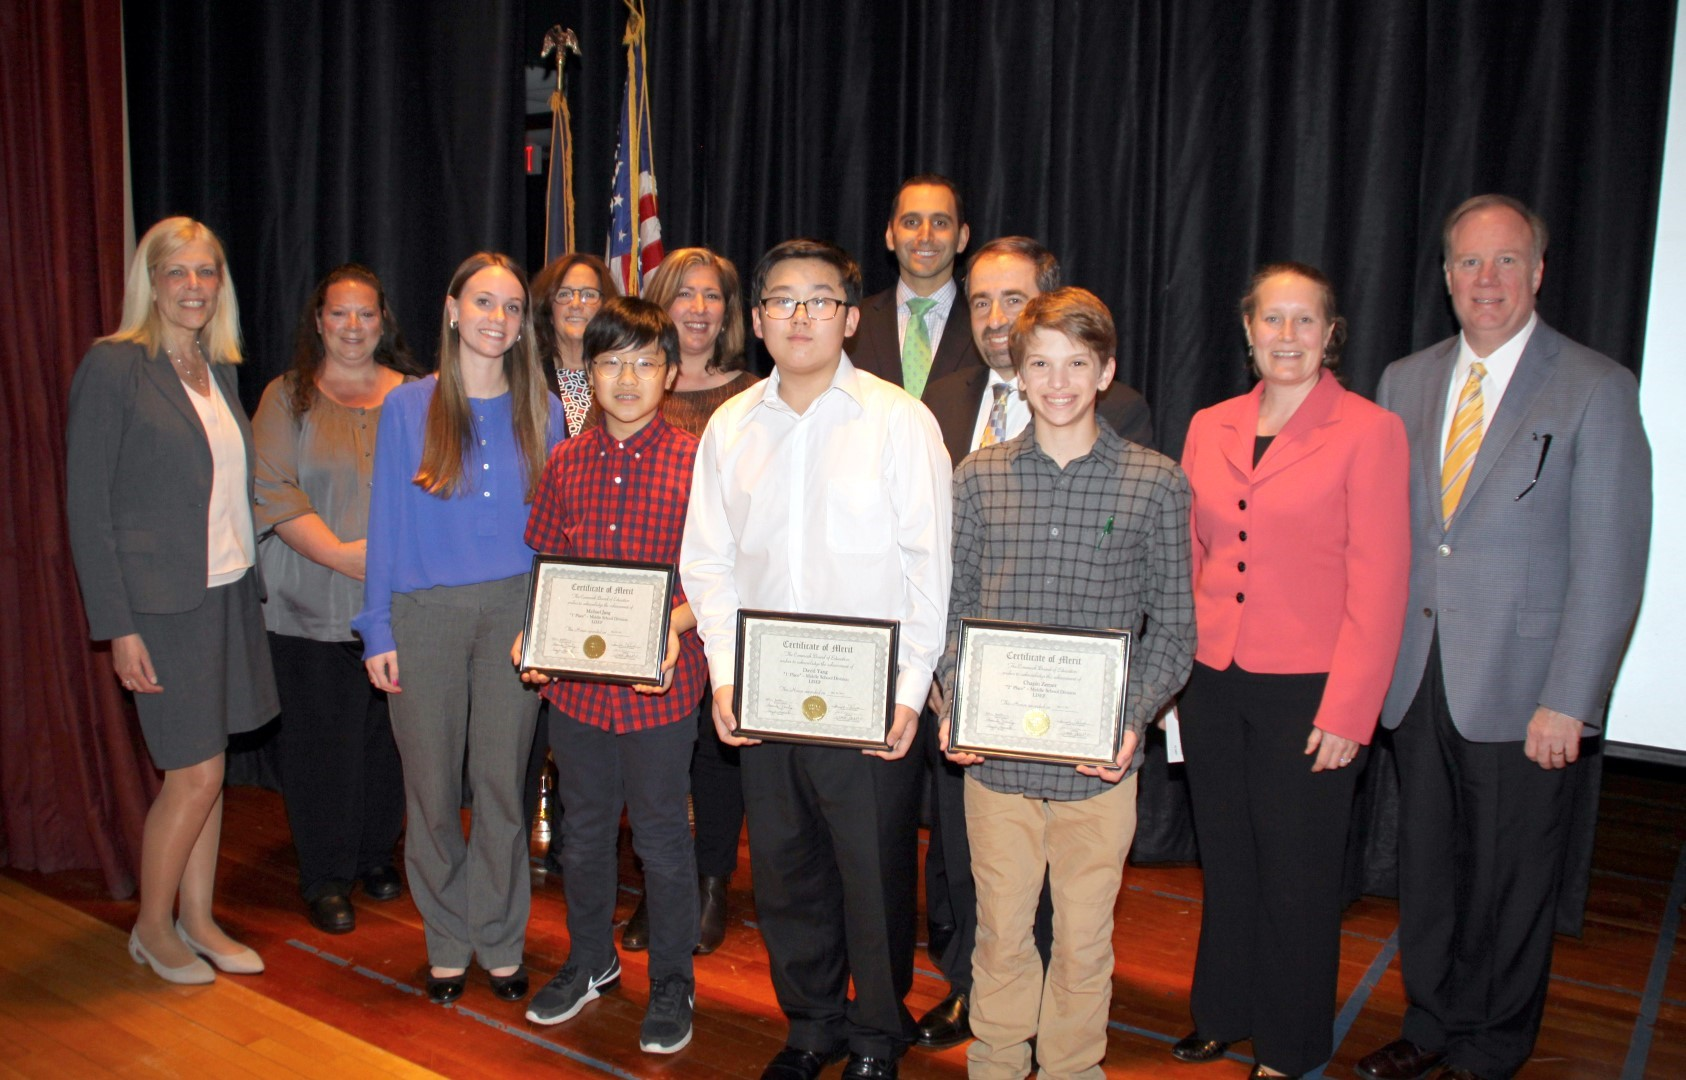 Long Island Science and Engineering Fair - Broadcom